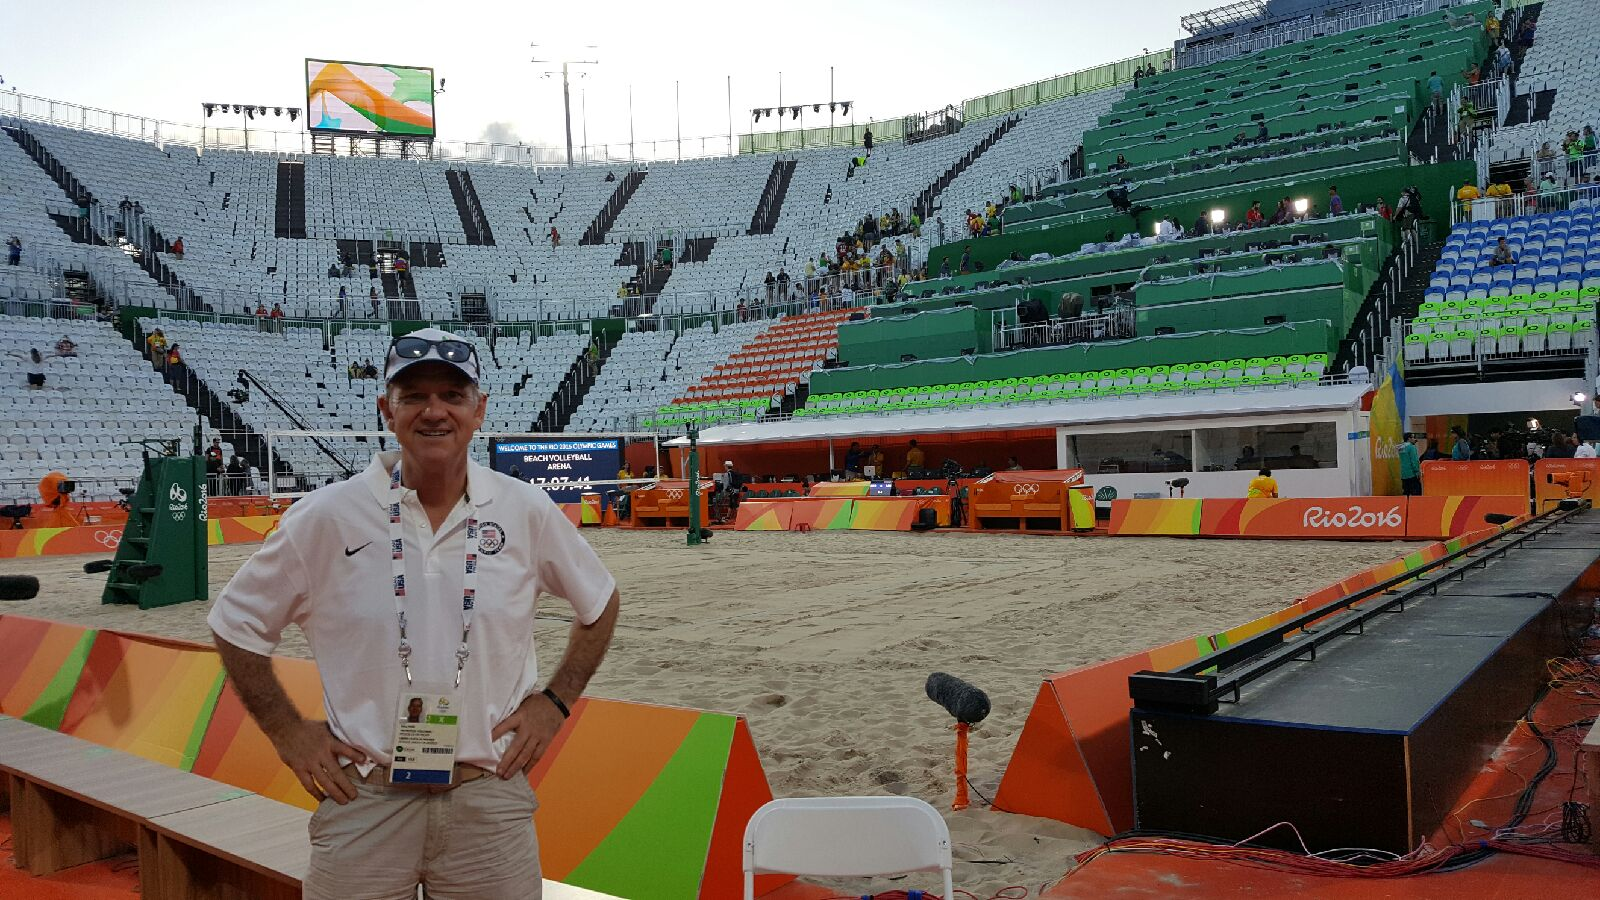 Gustie working at the Olympics in Rio